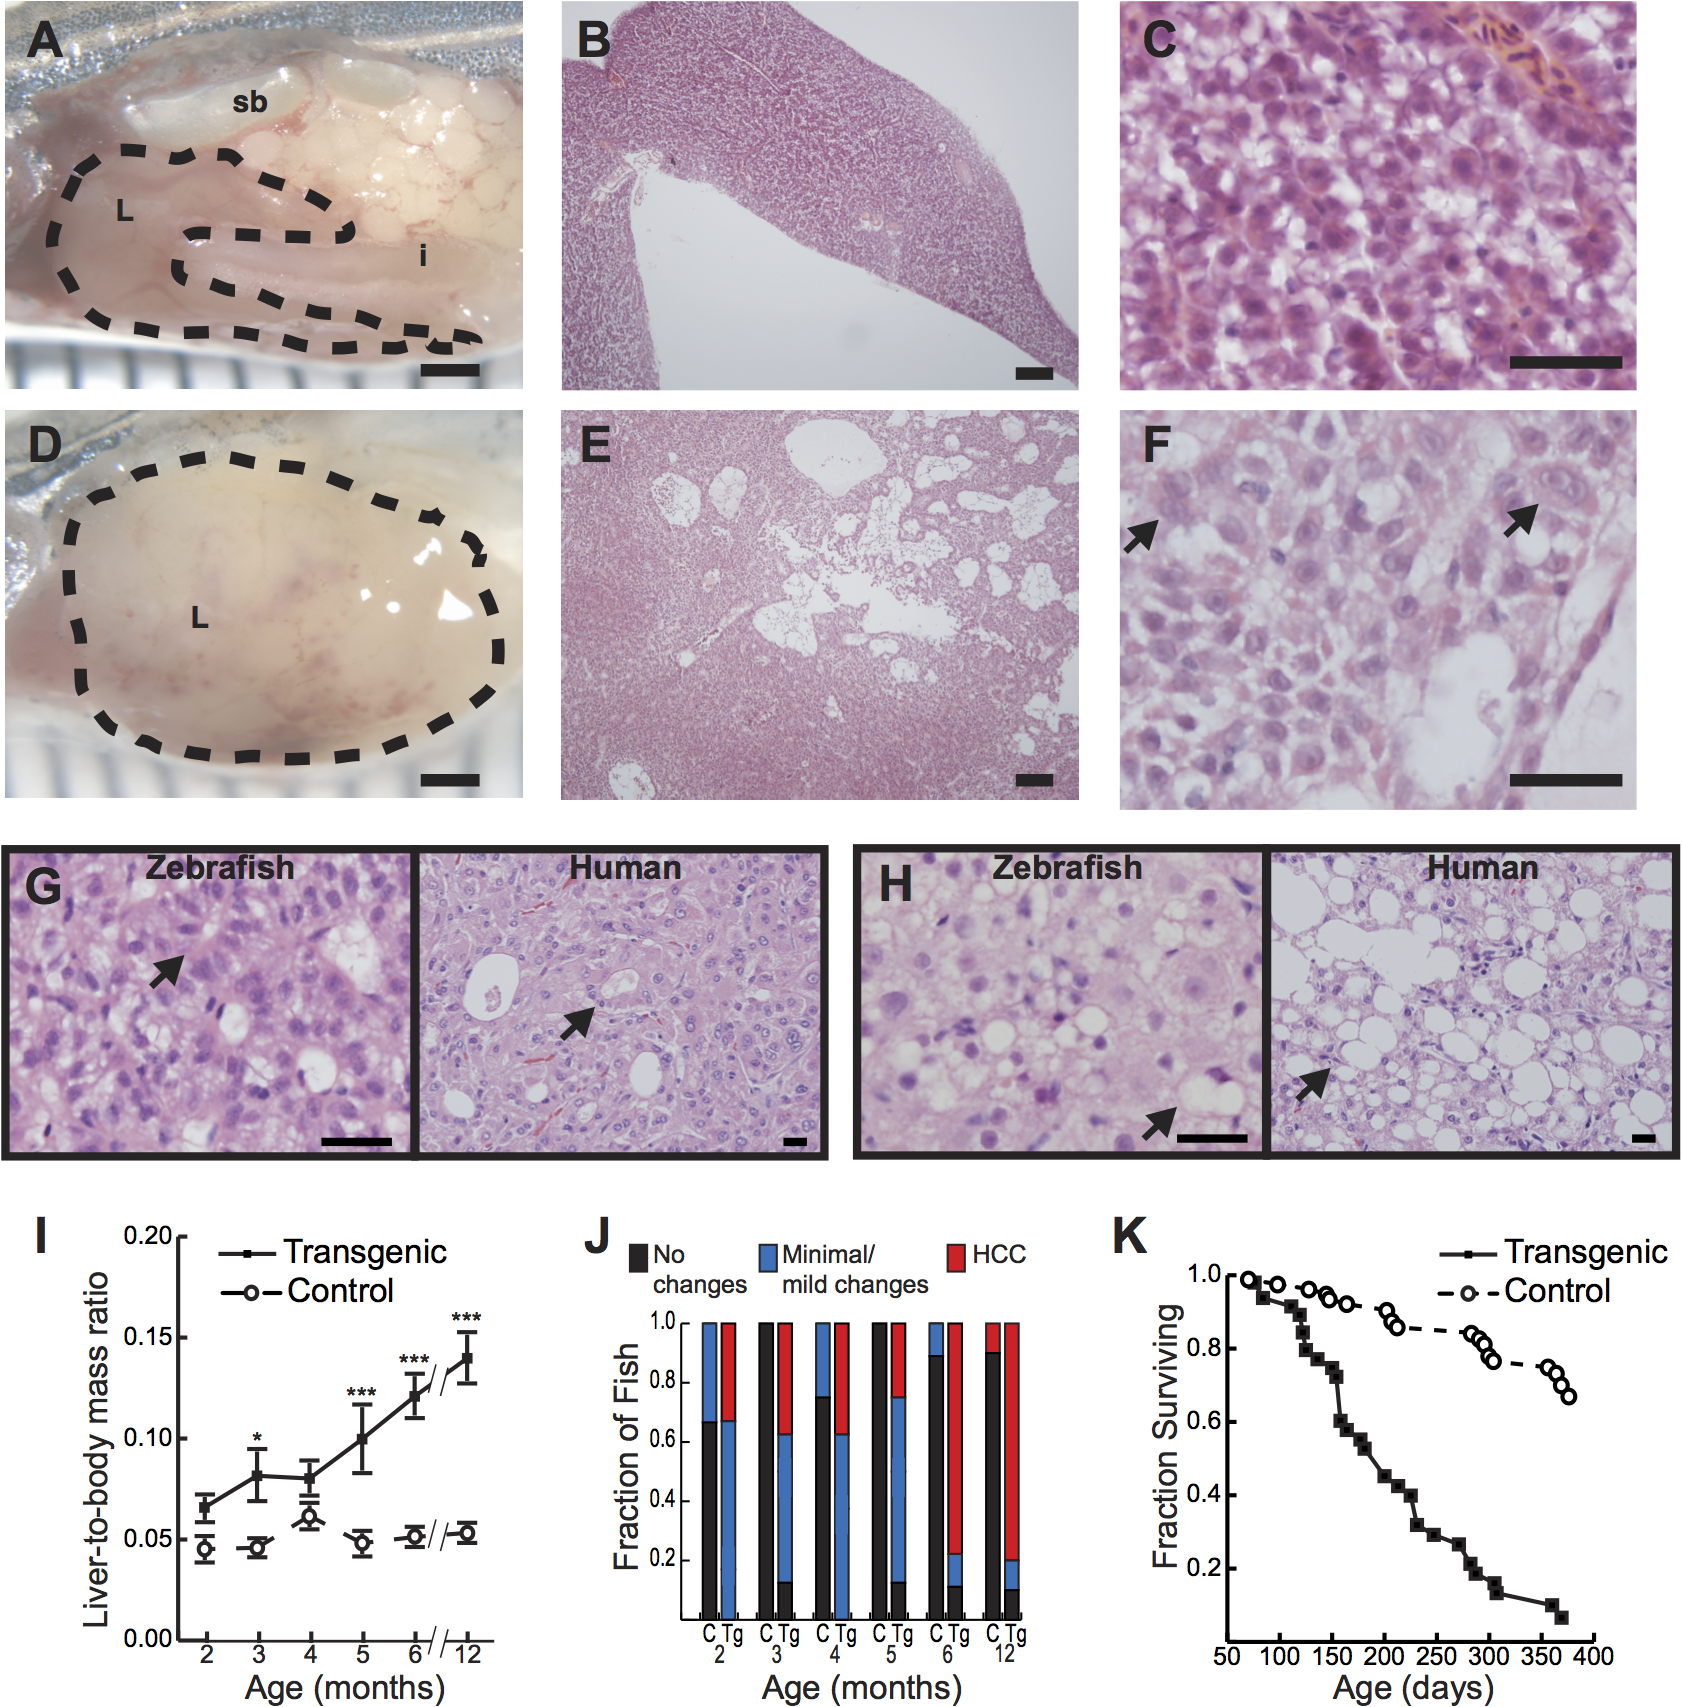 Hepatocyte-specific expression of activated β-catenin results in liver enlargement, hepatocellular carcinoma (HCC), and decreased survival in adult zebrafish.